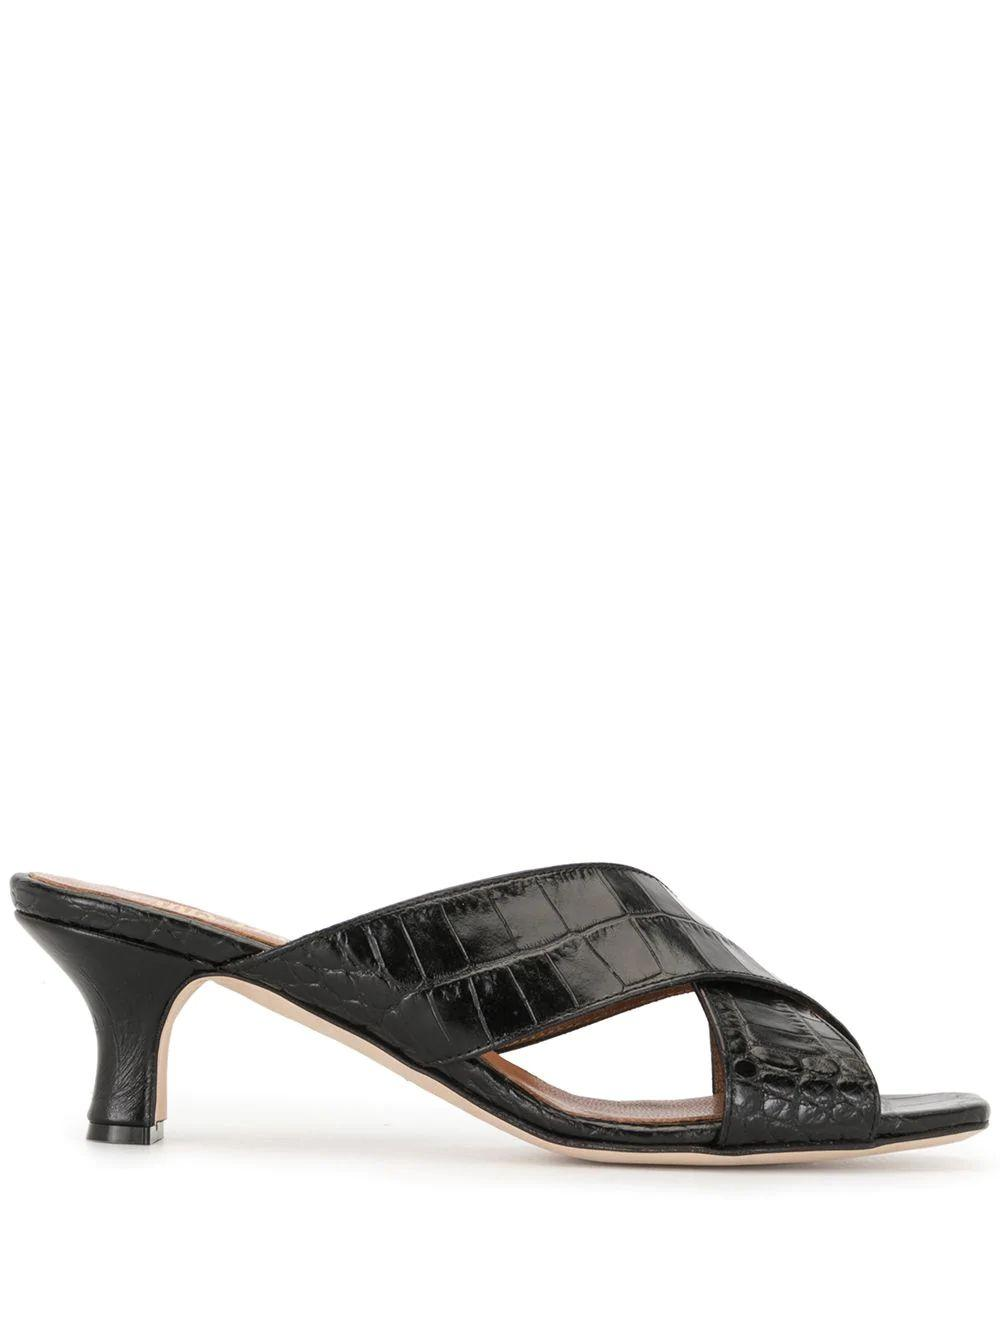 Croc Crossover Strap Mule Item # PX222-XCAG2